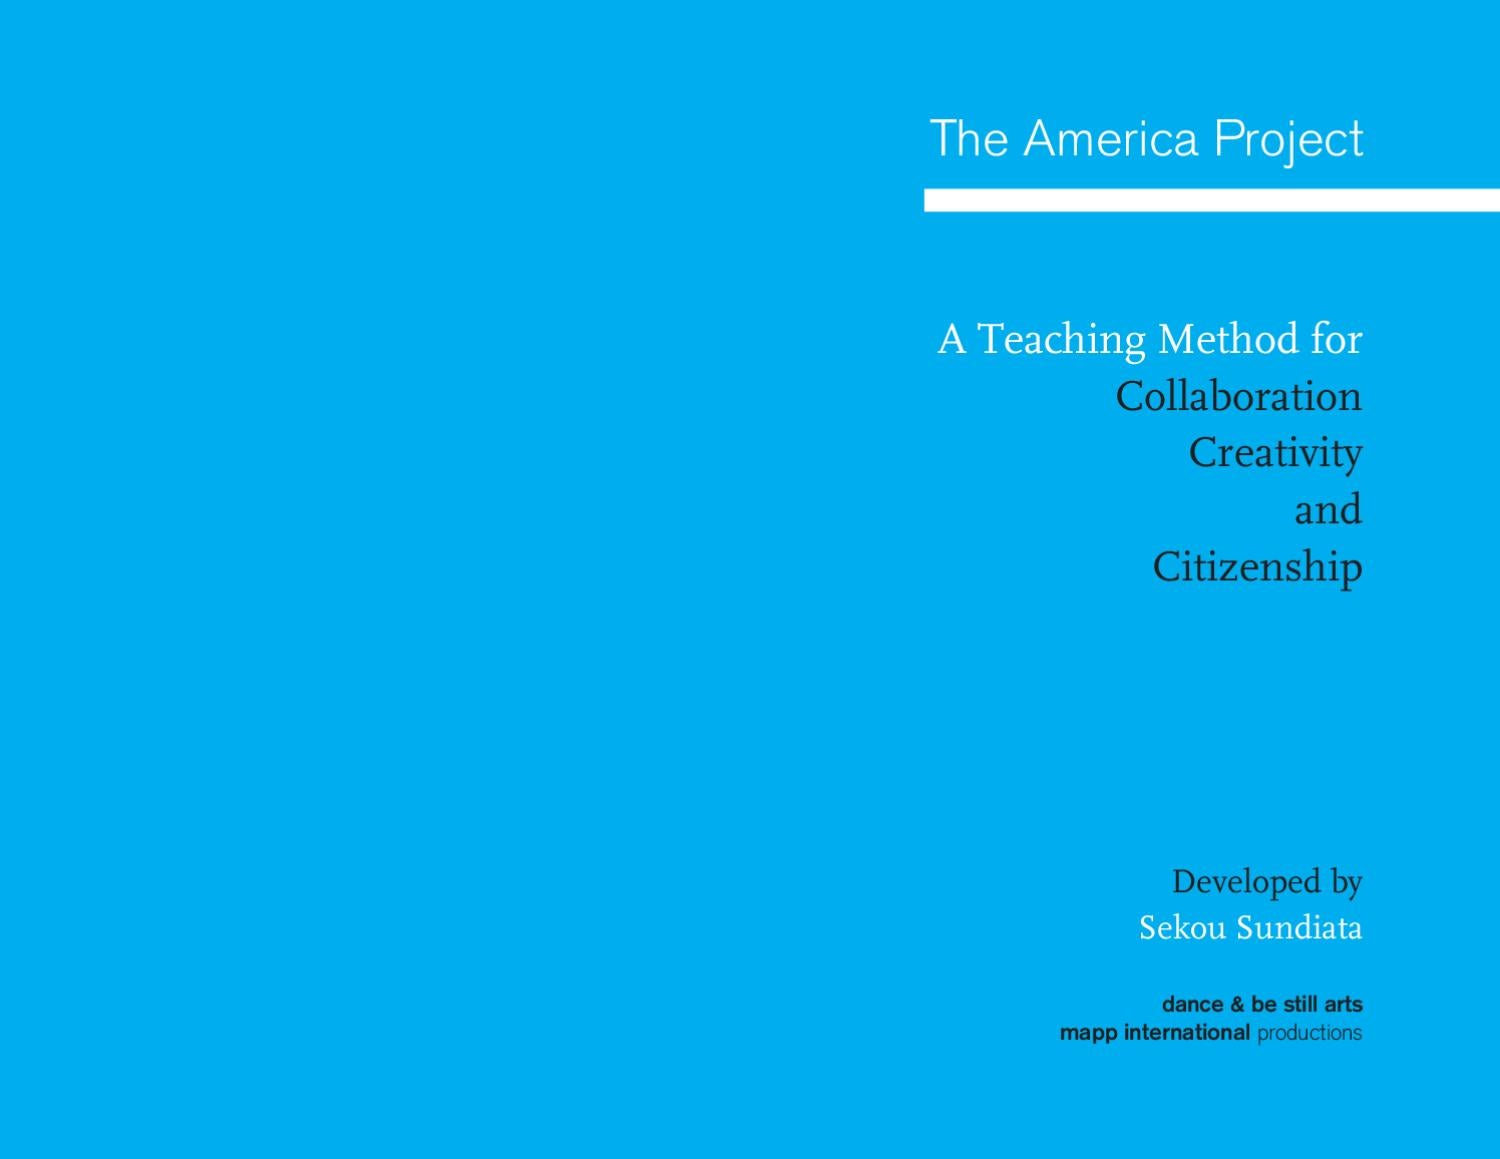 The America Project - A Teaching Method for Collaboration